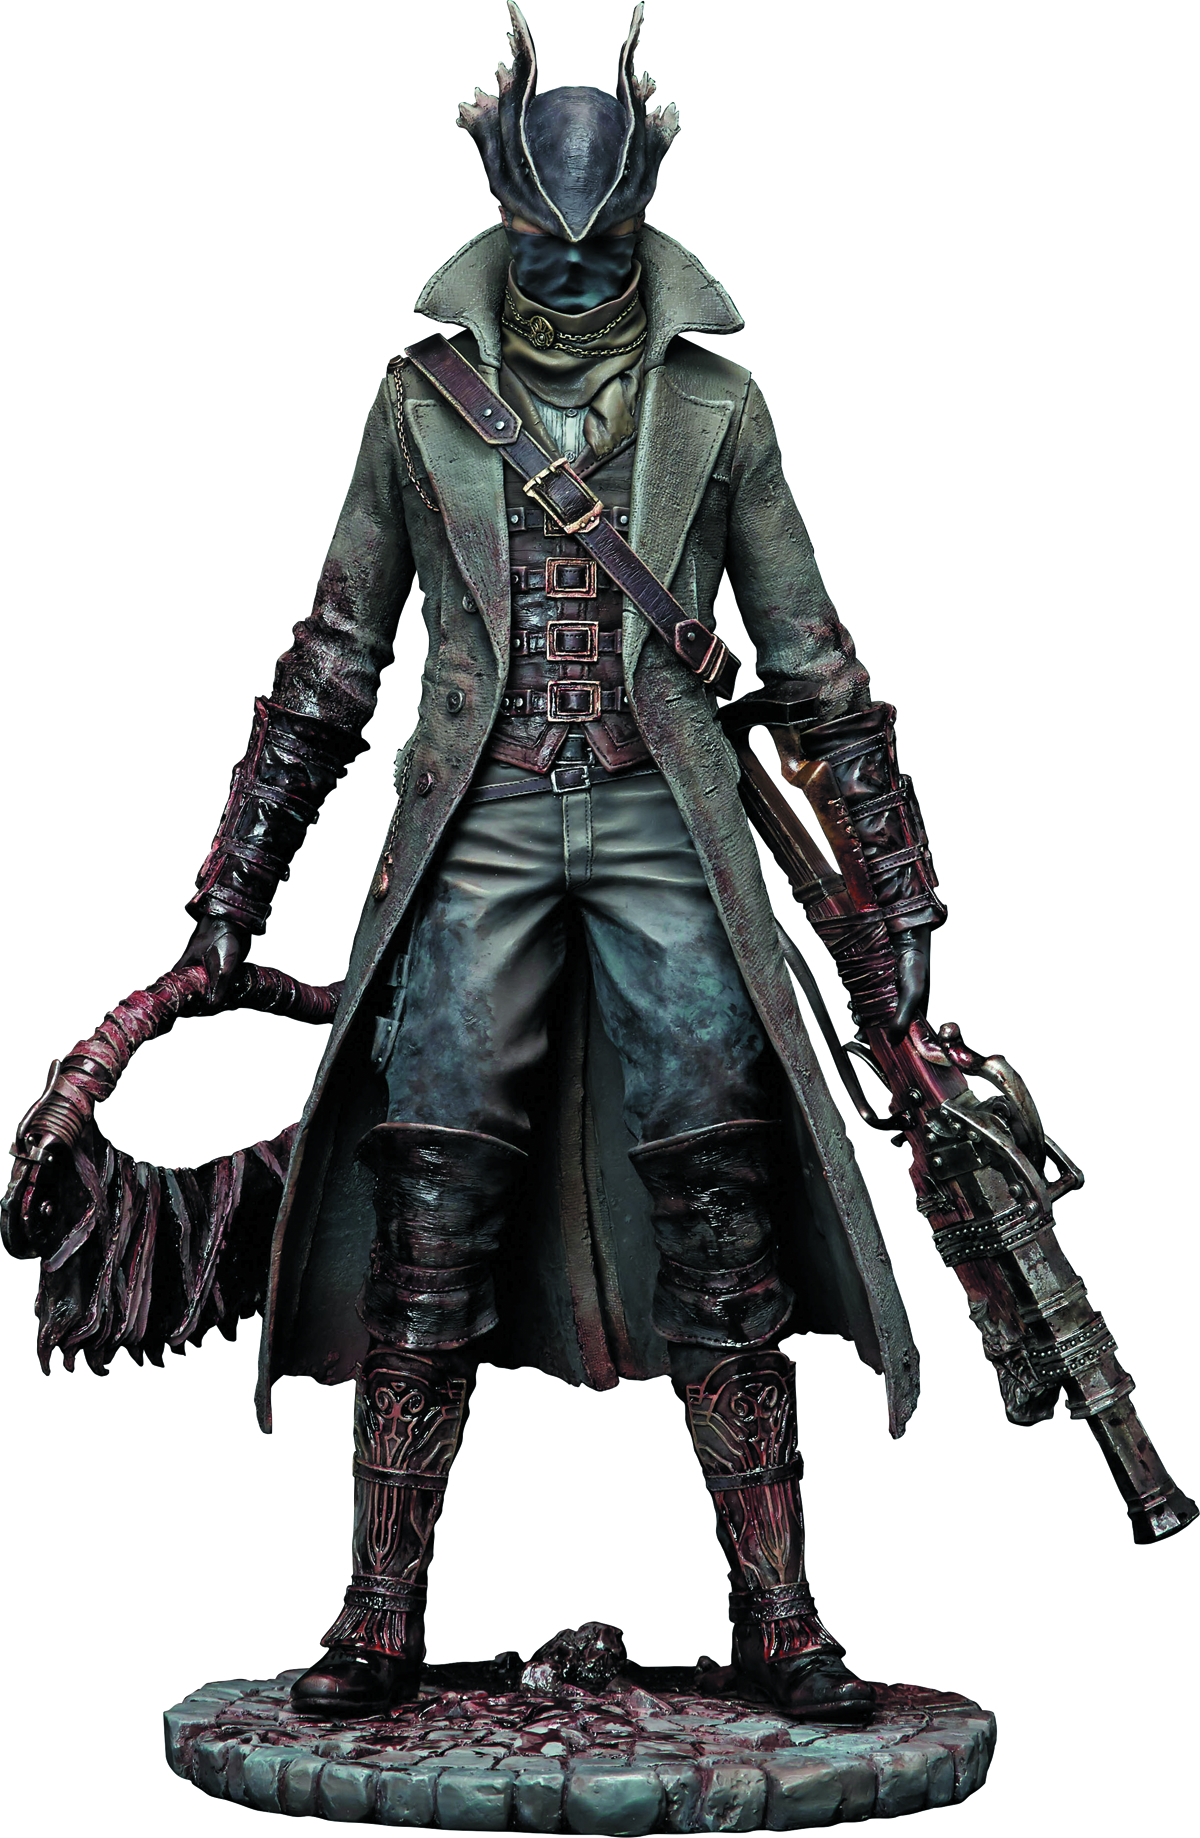 JUN158650 - BLOODBORNE HUNTER 1/6 PVC FIG PUDDLE OF BLOOD ...